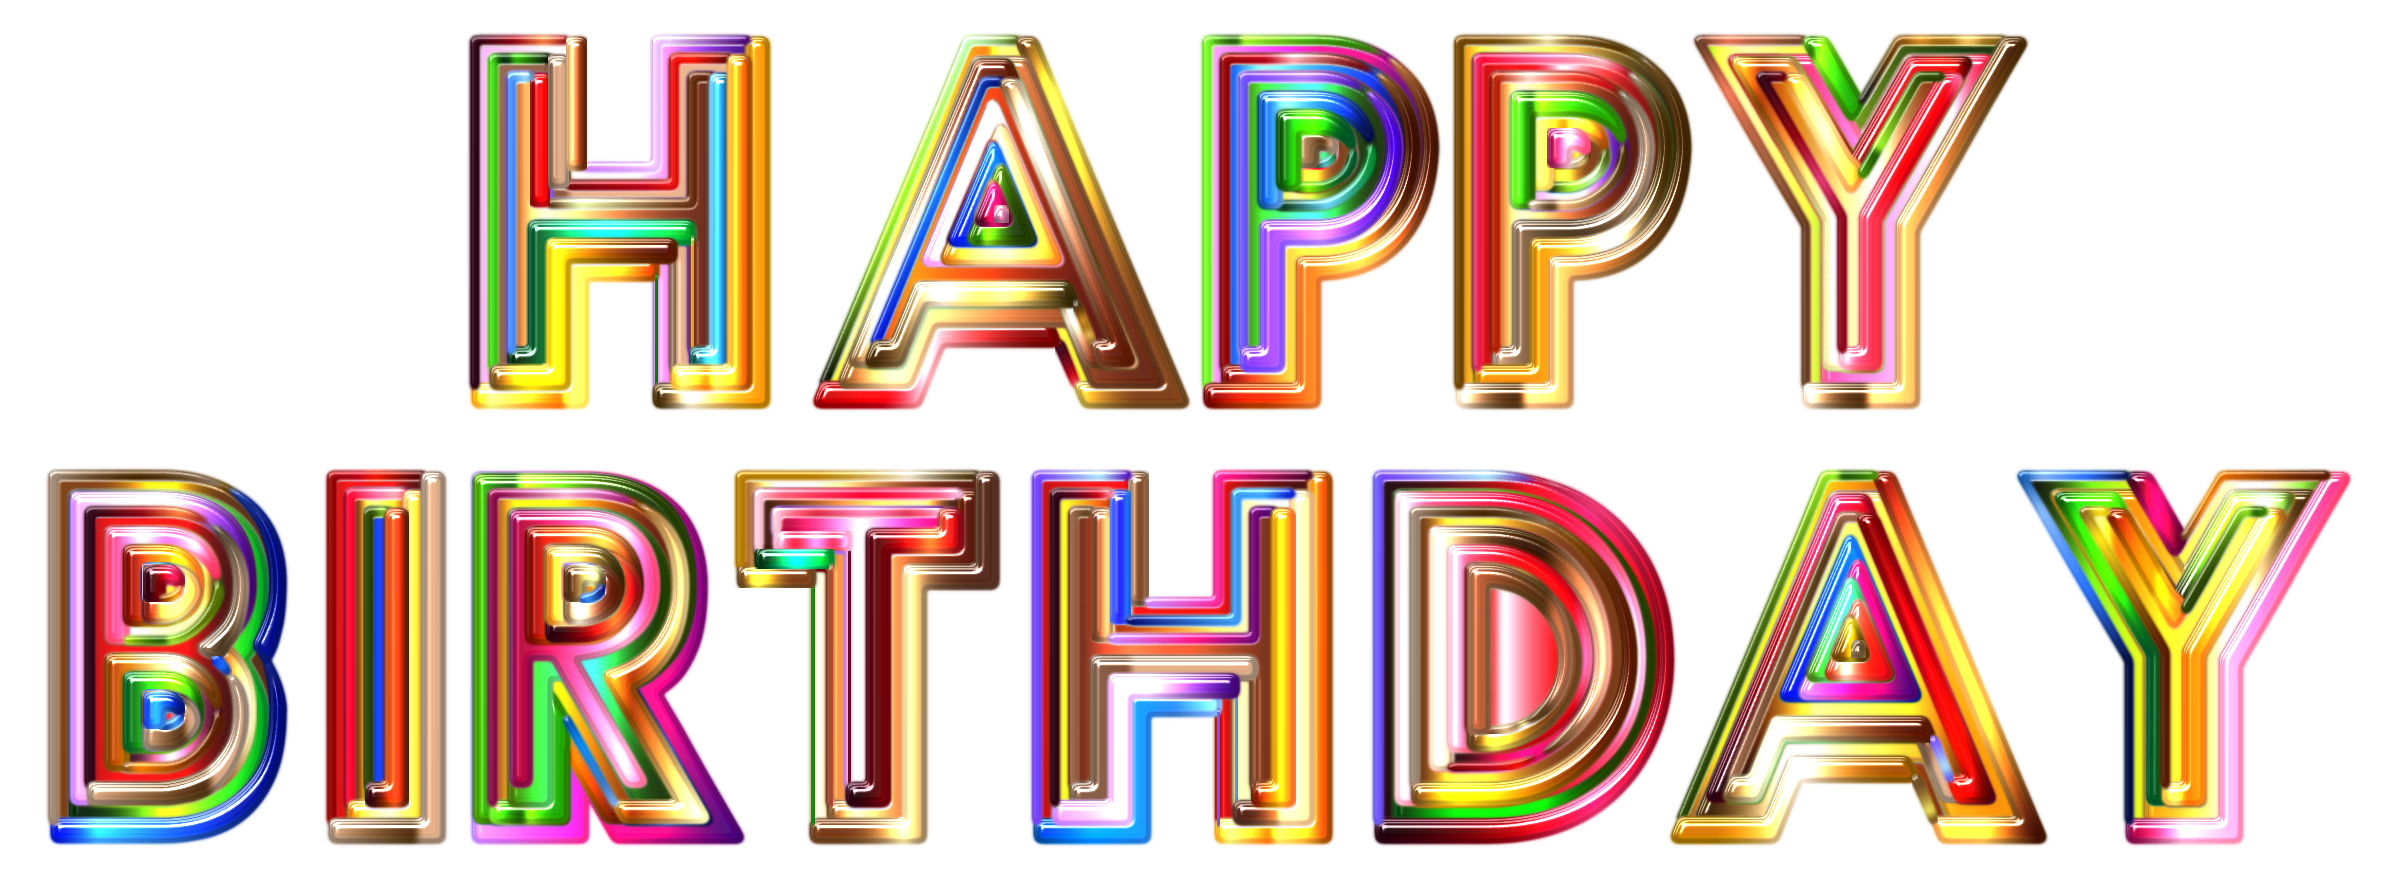 Happy Birthday Transparent Background